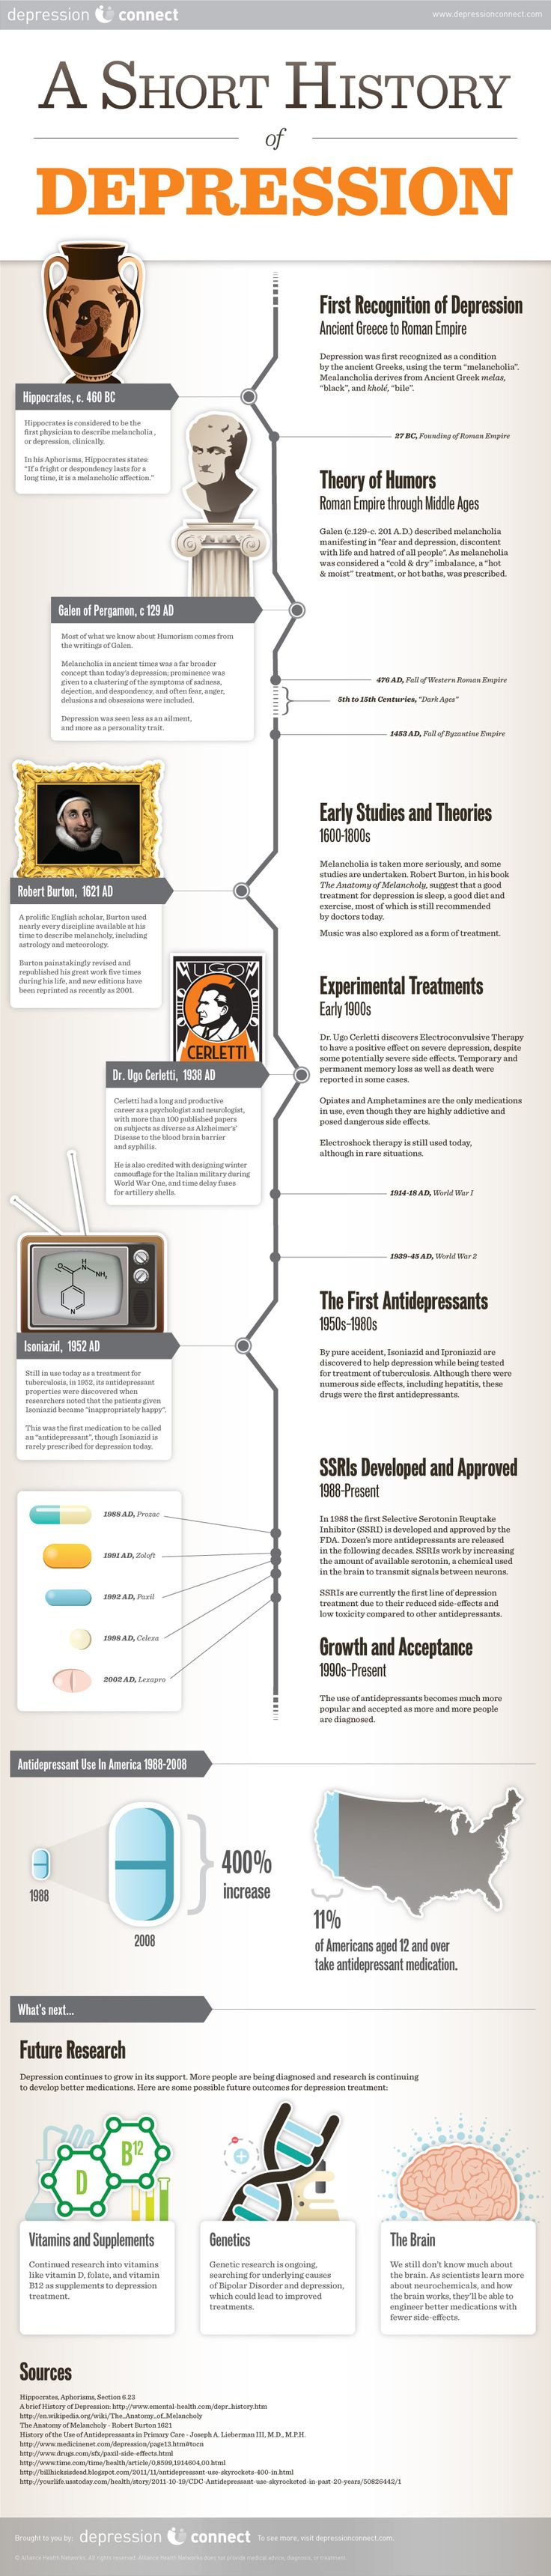 History of Depression Infographic. Please visit my health webpage http://abiiid.com/dxn-ganoderma